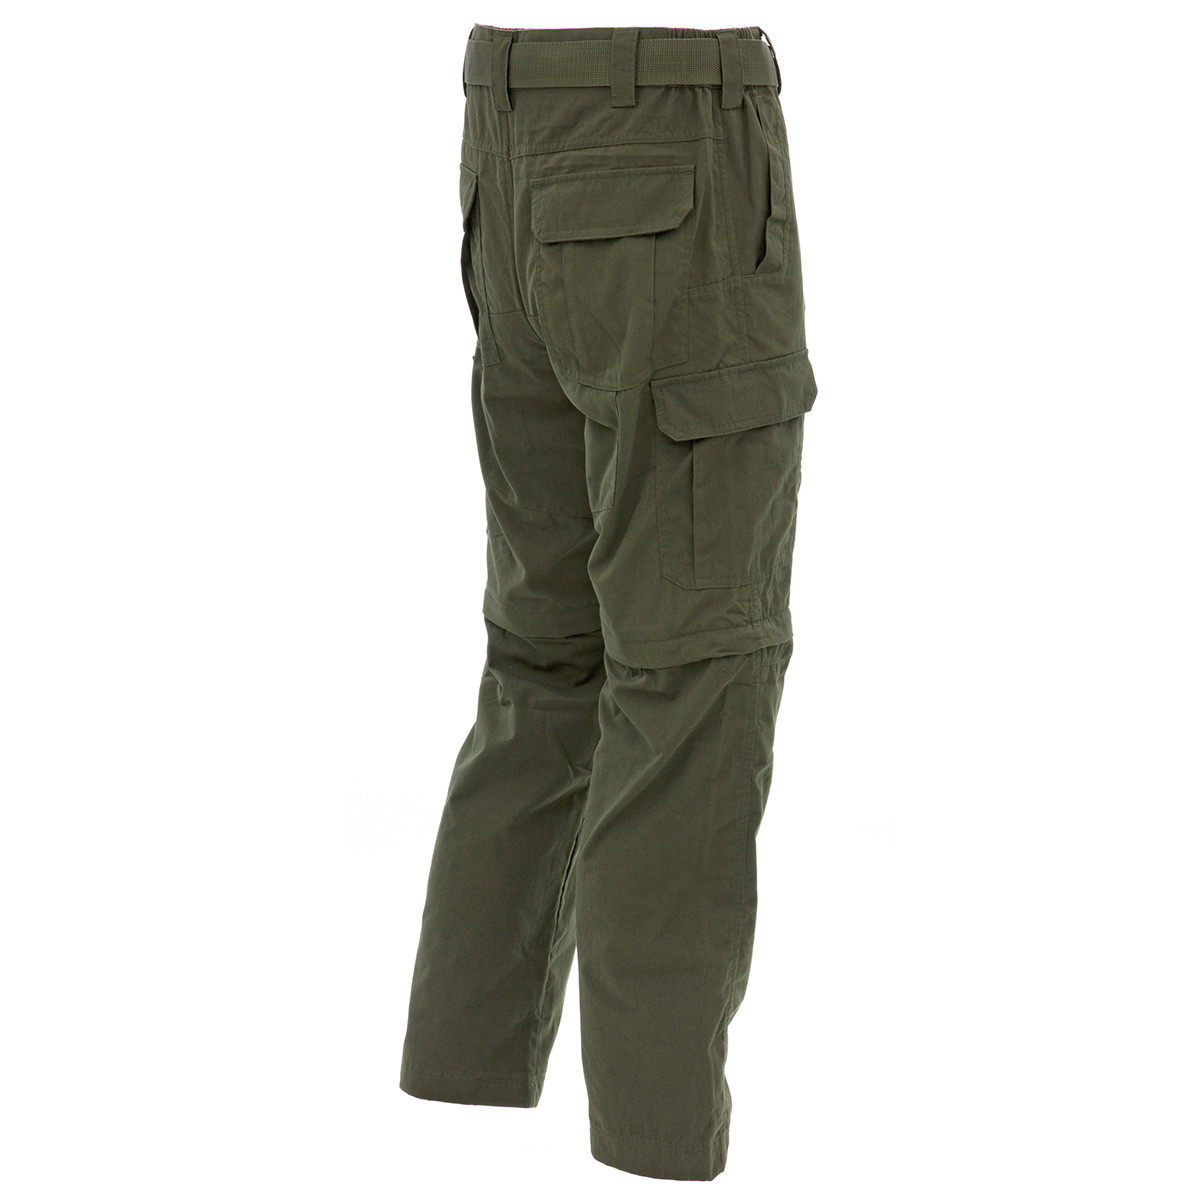 DAM MAD BIVVY ZONE COMBAT TROUSERS